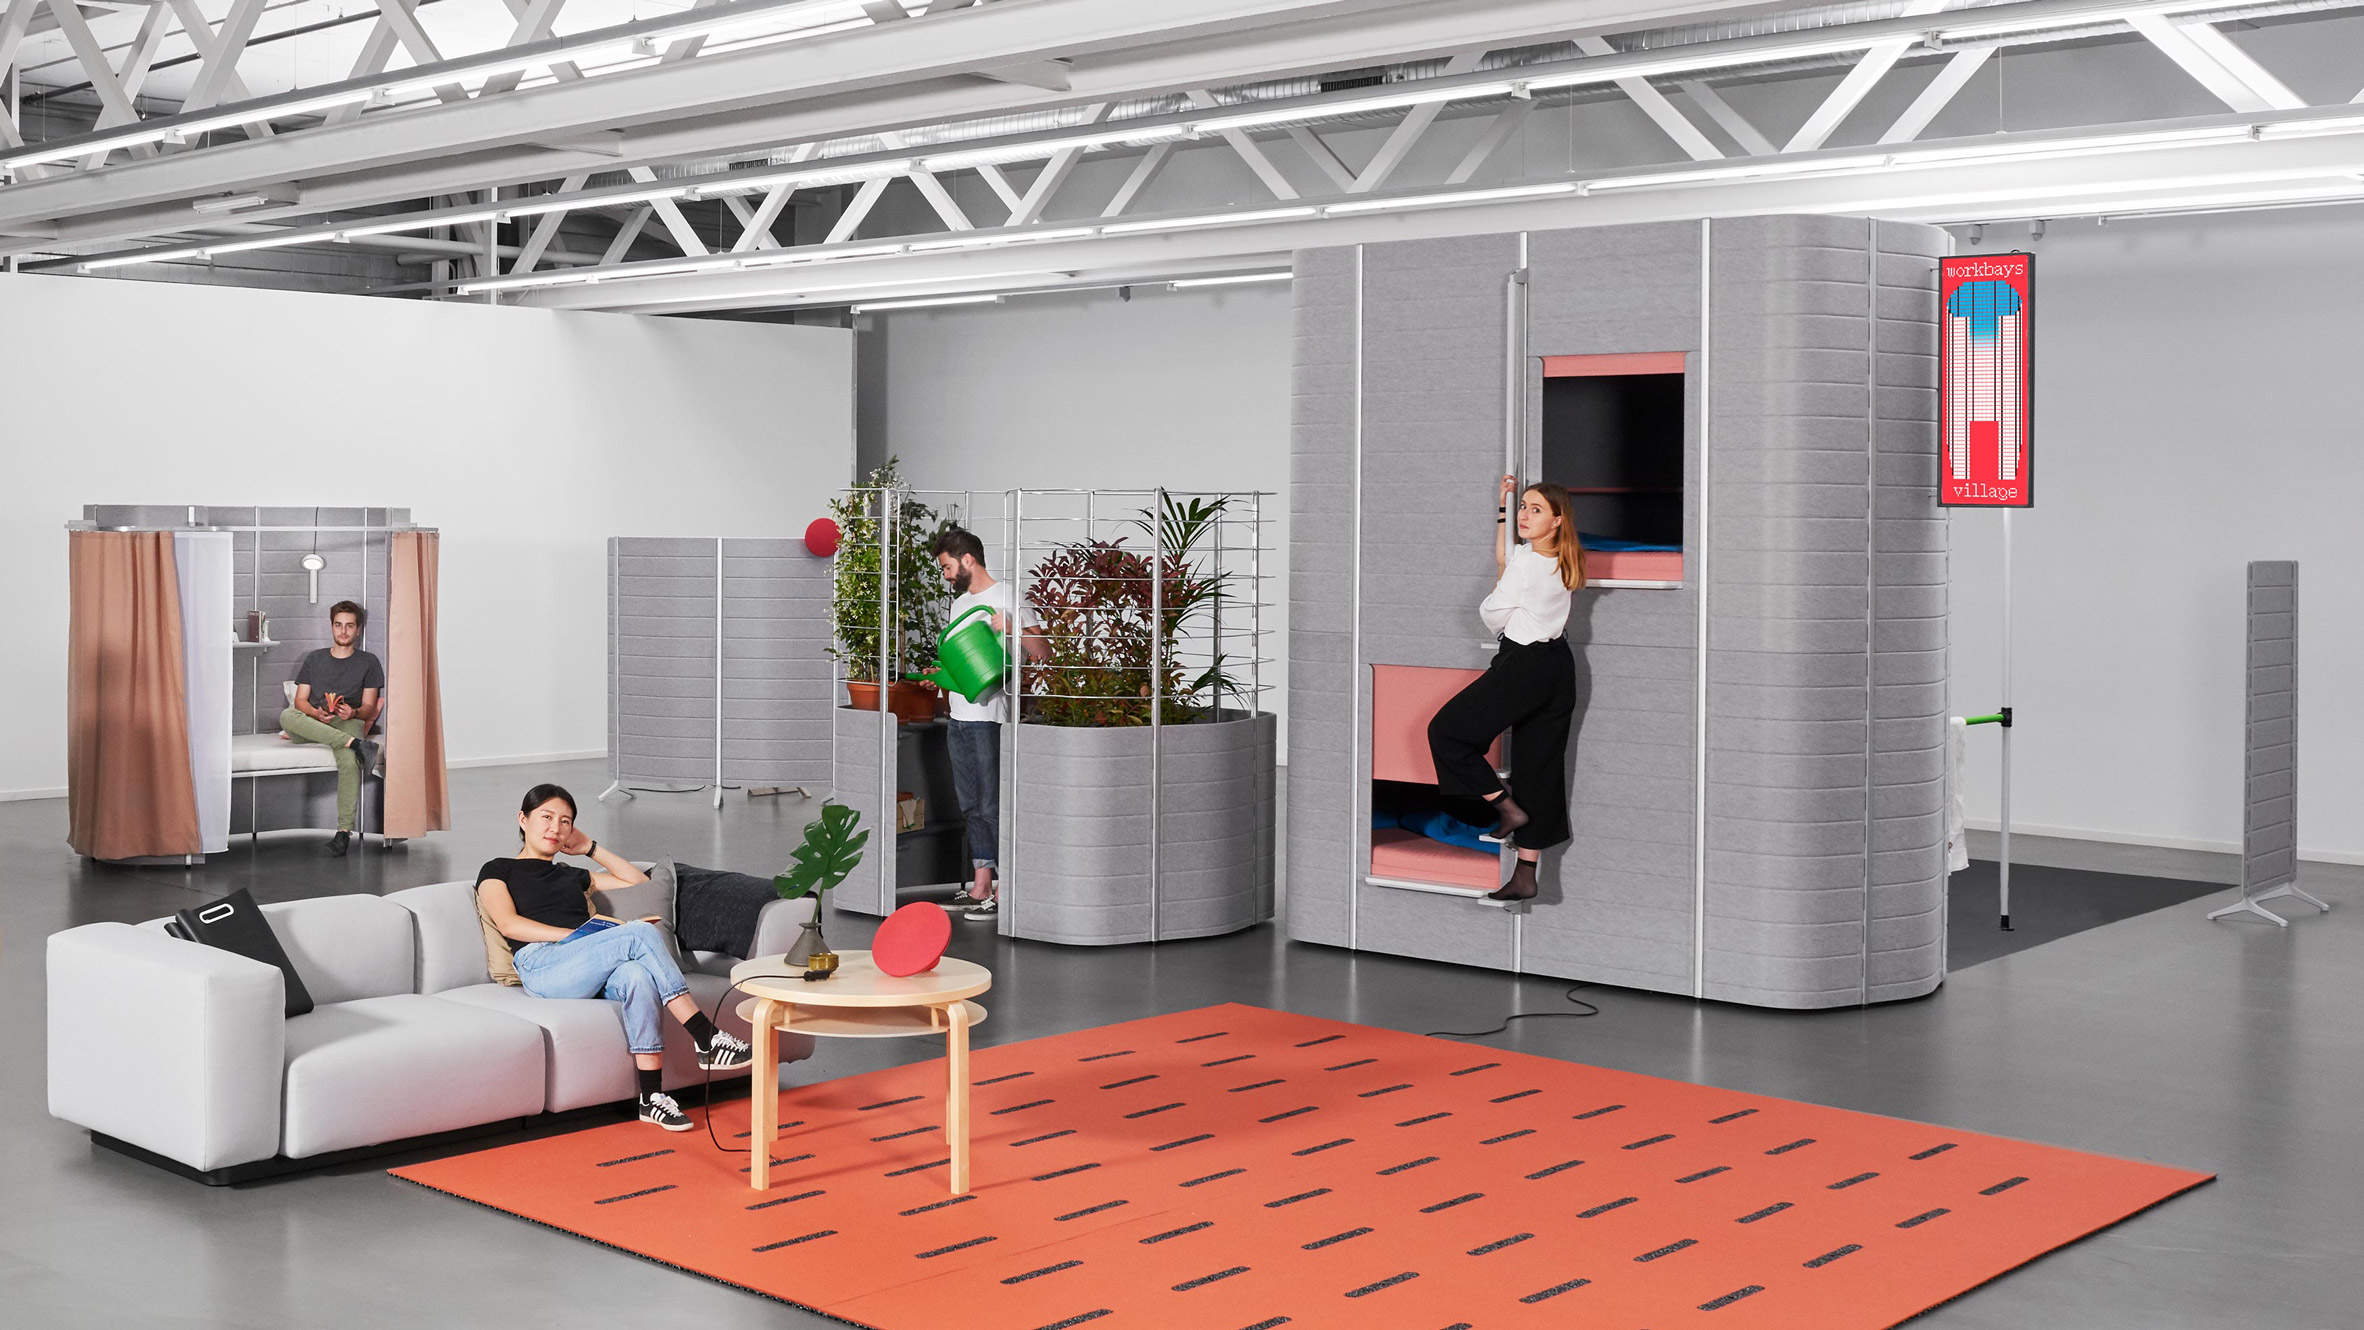 ECAL students design Workbays Village